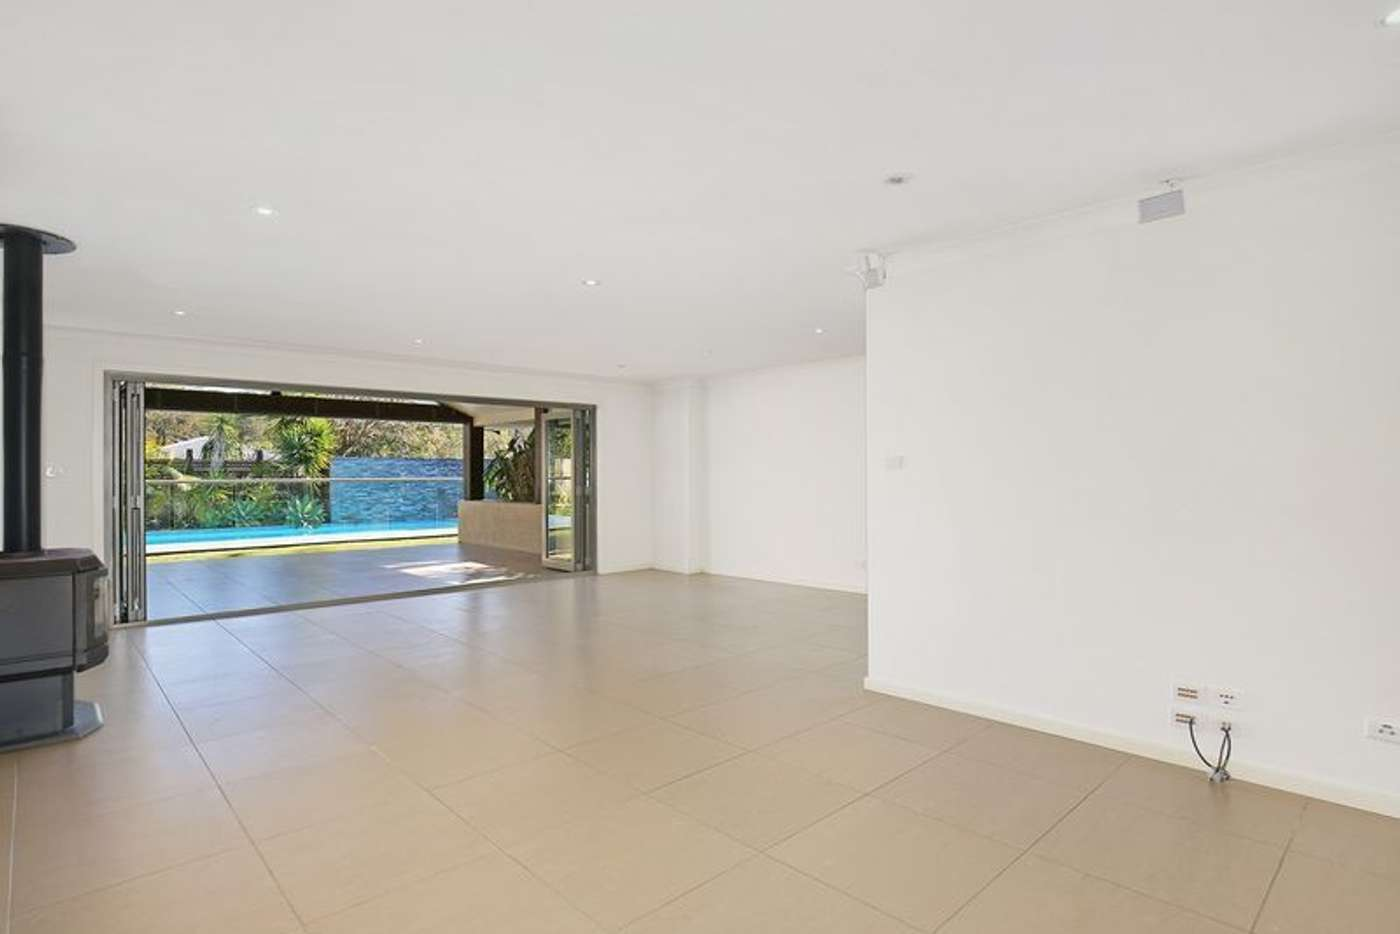 Sixth view of Homely house listing, 4 David Watt Close, Sawtell NSW 2452